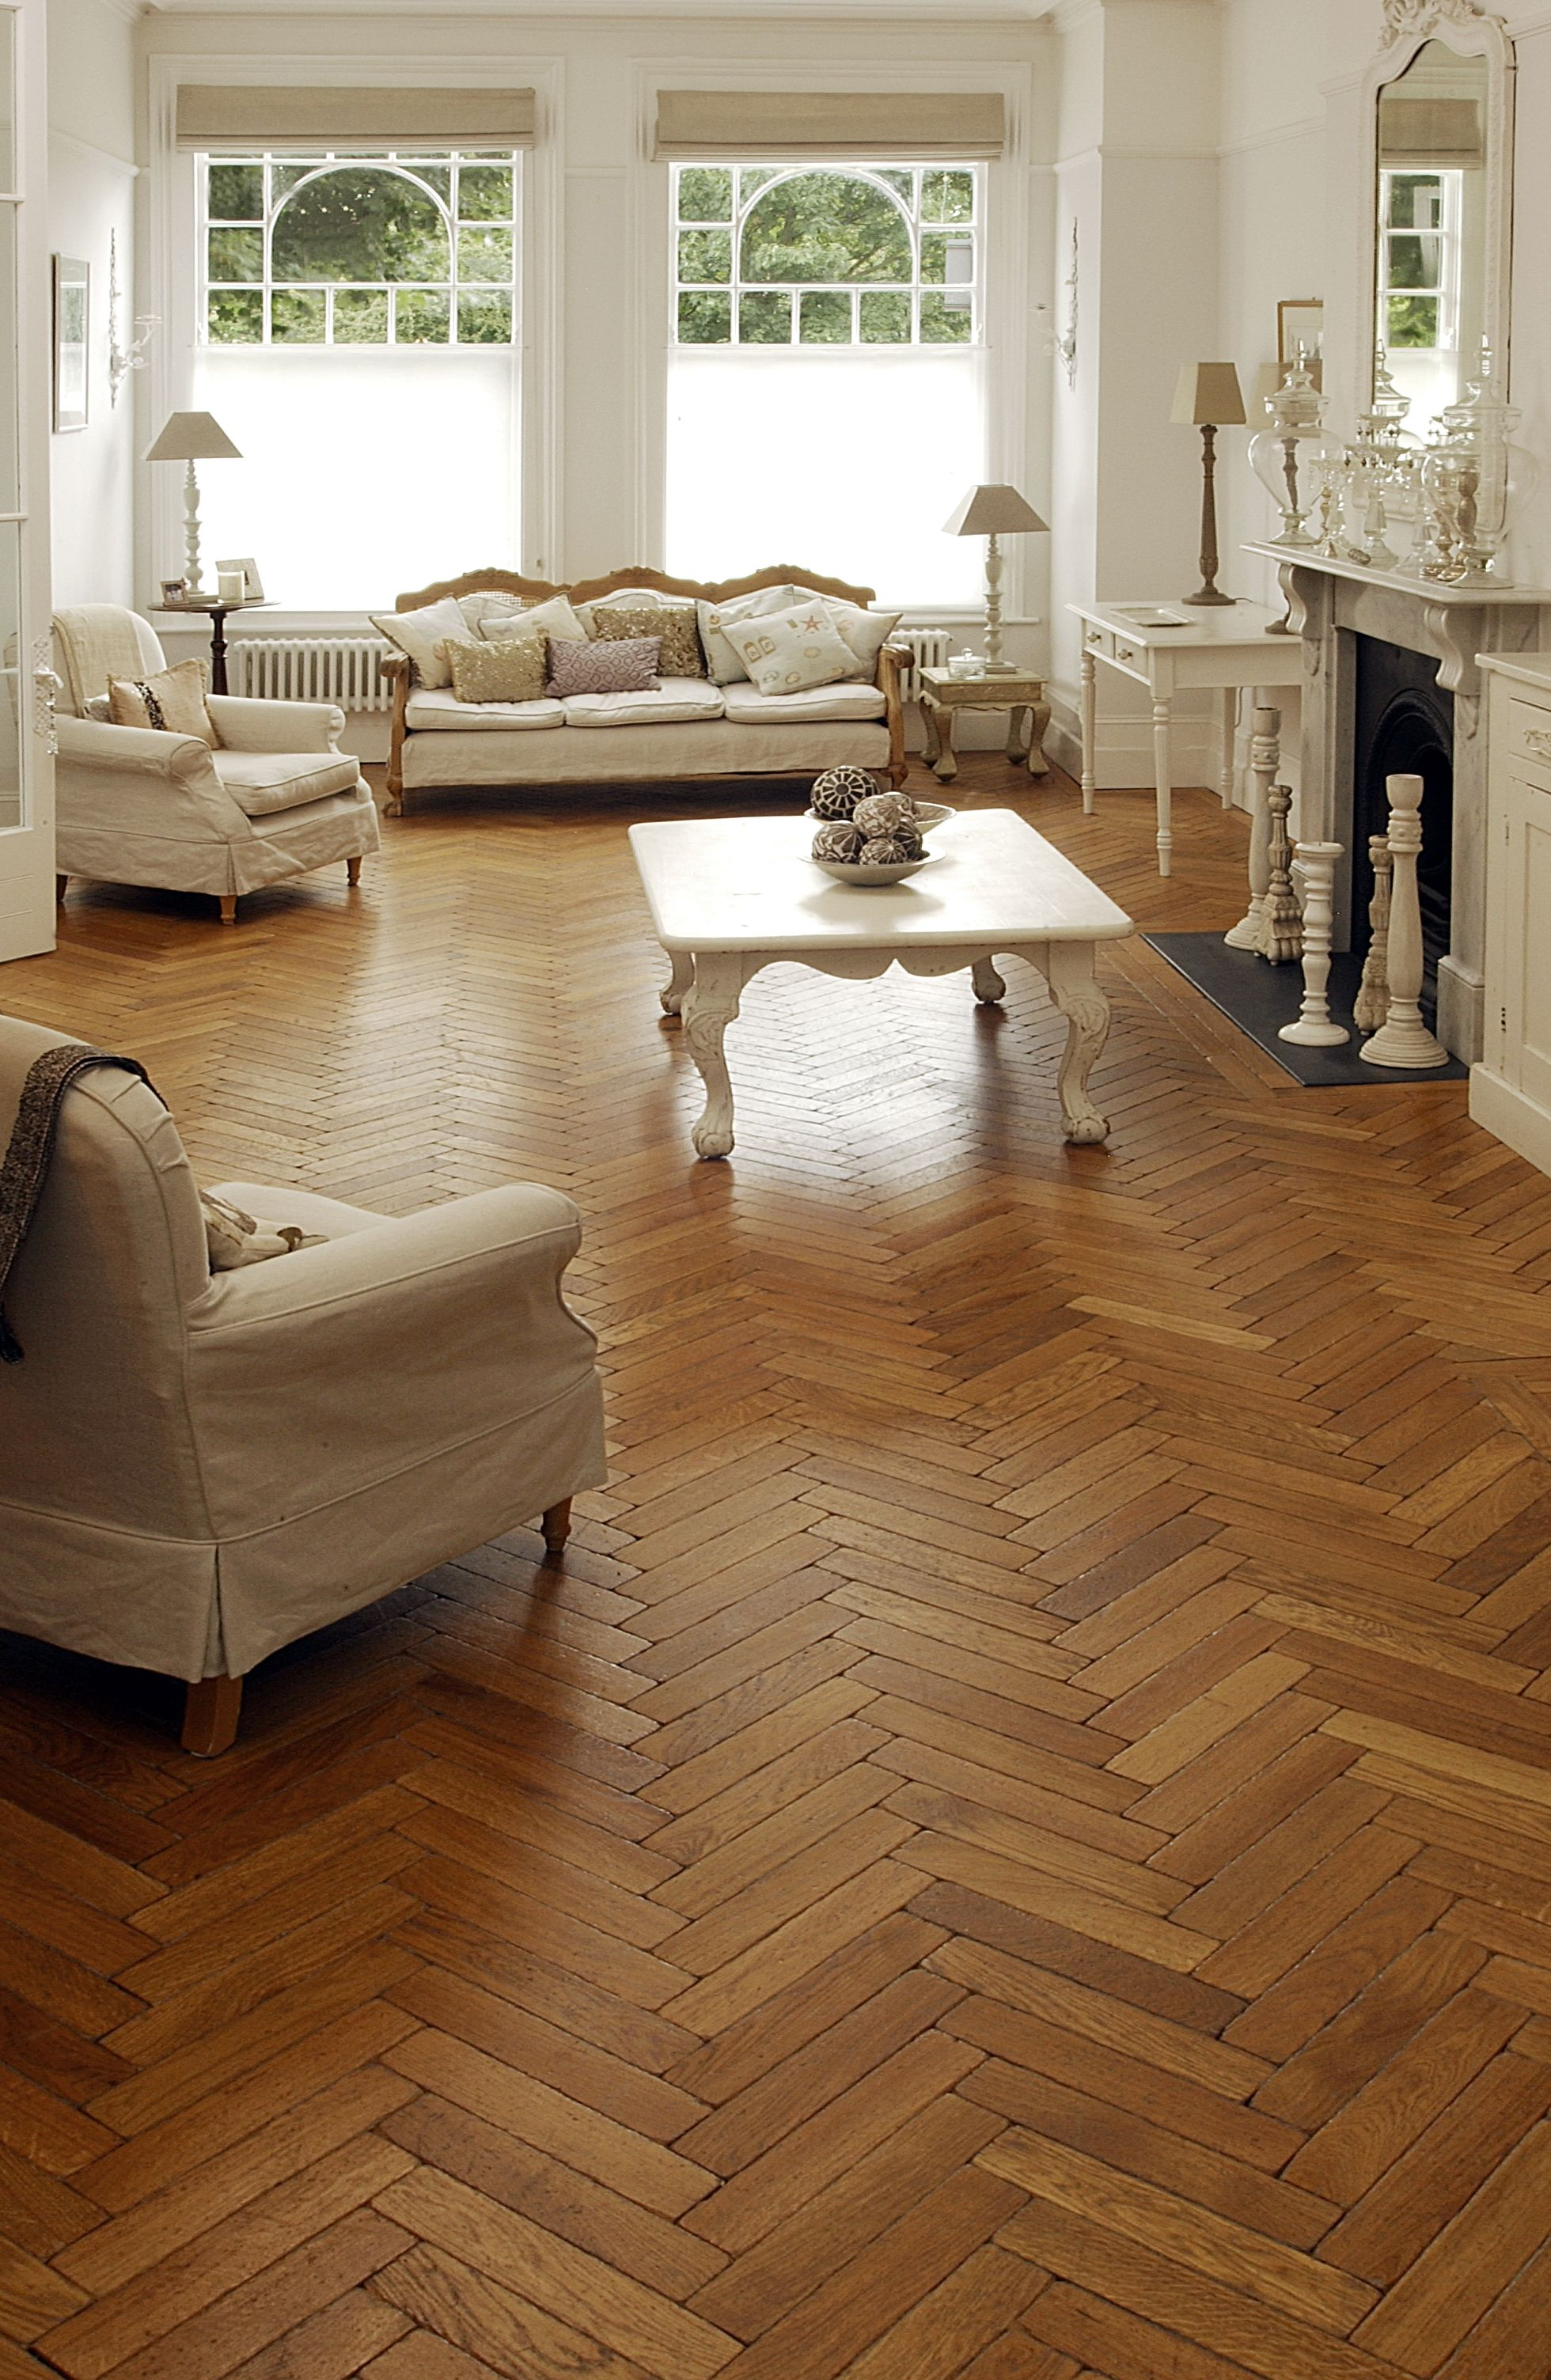 Our Parquet Flooring Is Available As Engineered Or Solid Parquet  Woodblocks. View Our Chevron And More Traditional Designs Of Parquet In A  Variety Of ...